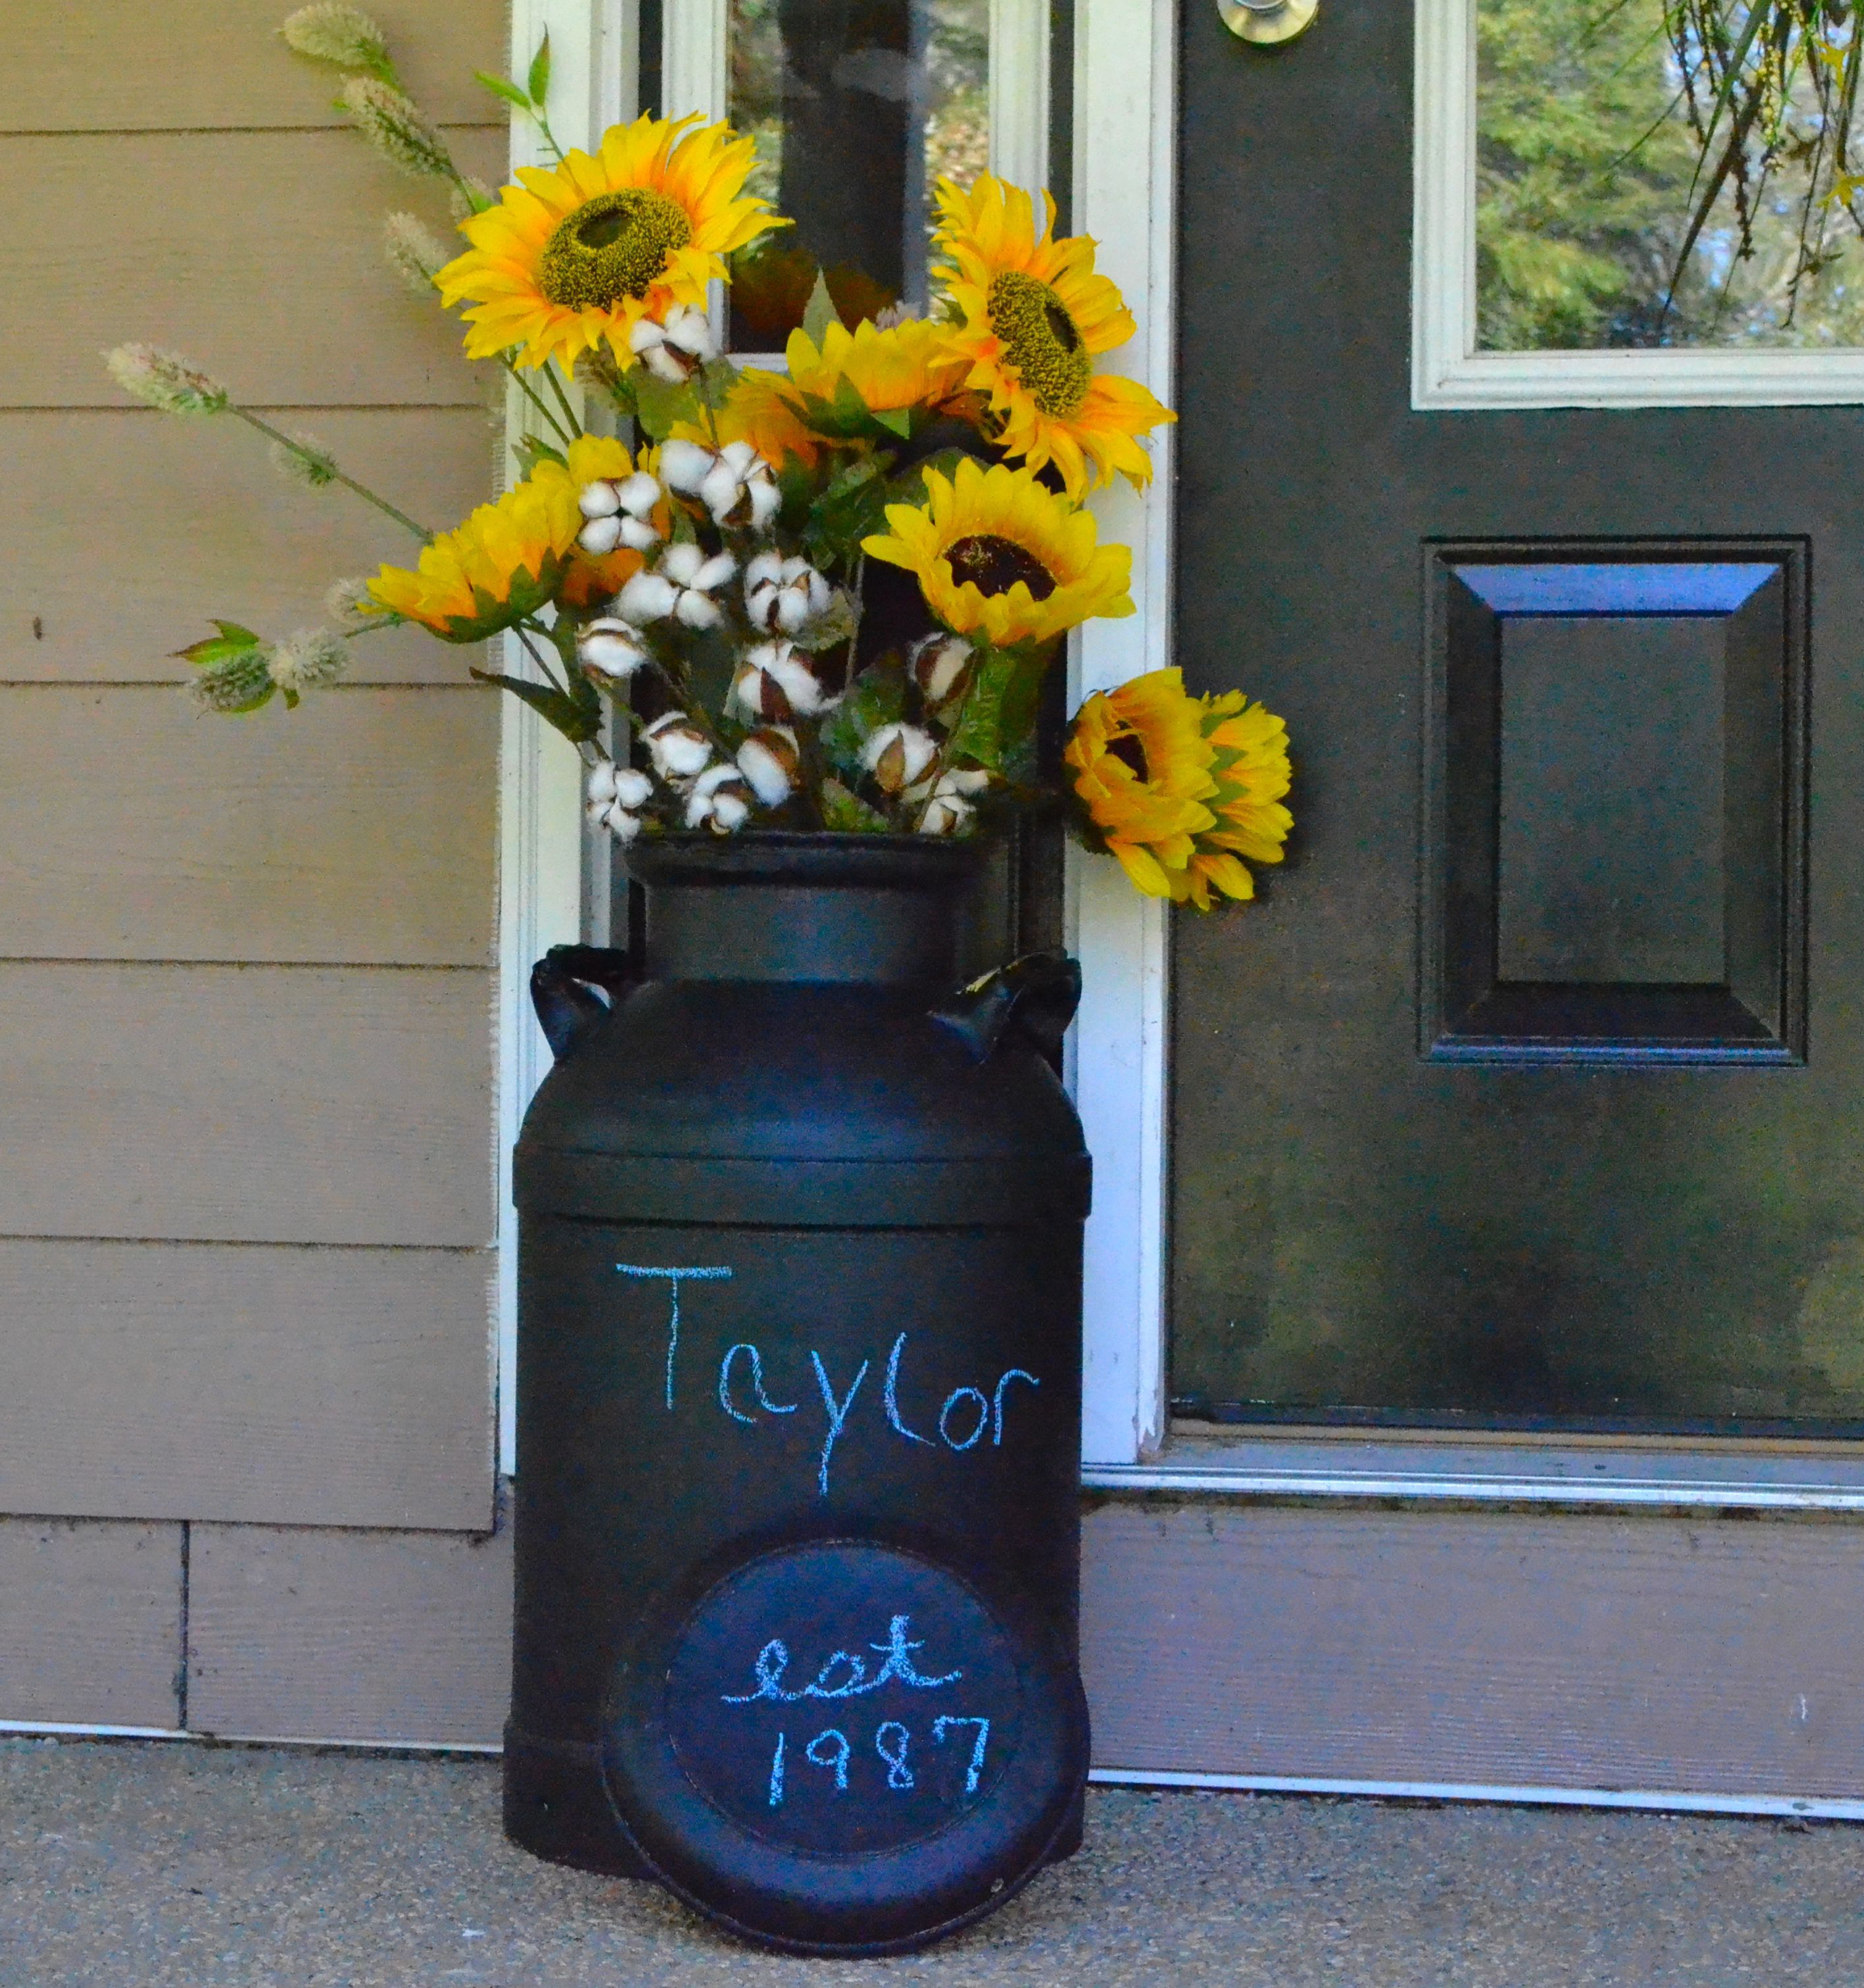 Ive Seen Some Really Inexpensive Milk Cans Floating Around And This Is A Great Idea Im Always Looking For Items With He Milk Can Decor Milk Cans Old Milk Cans